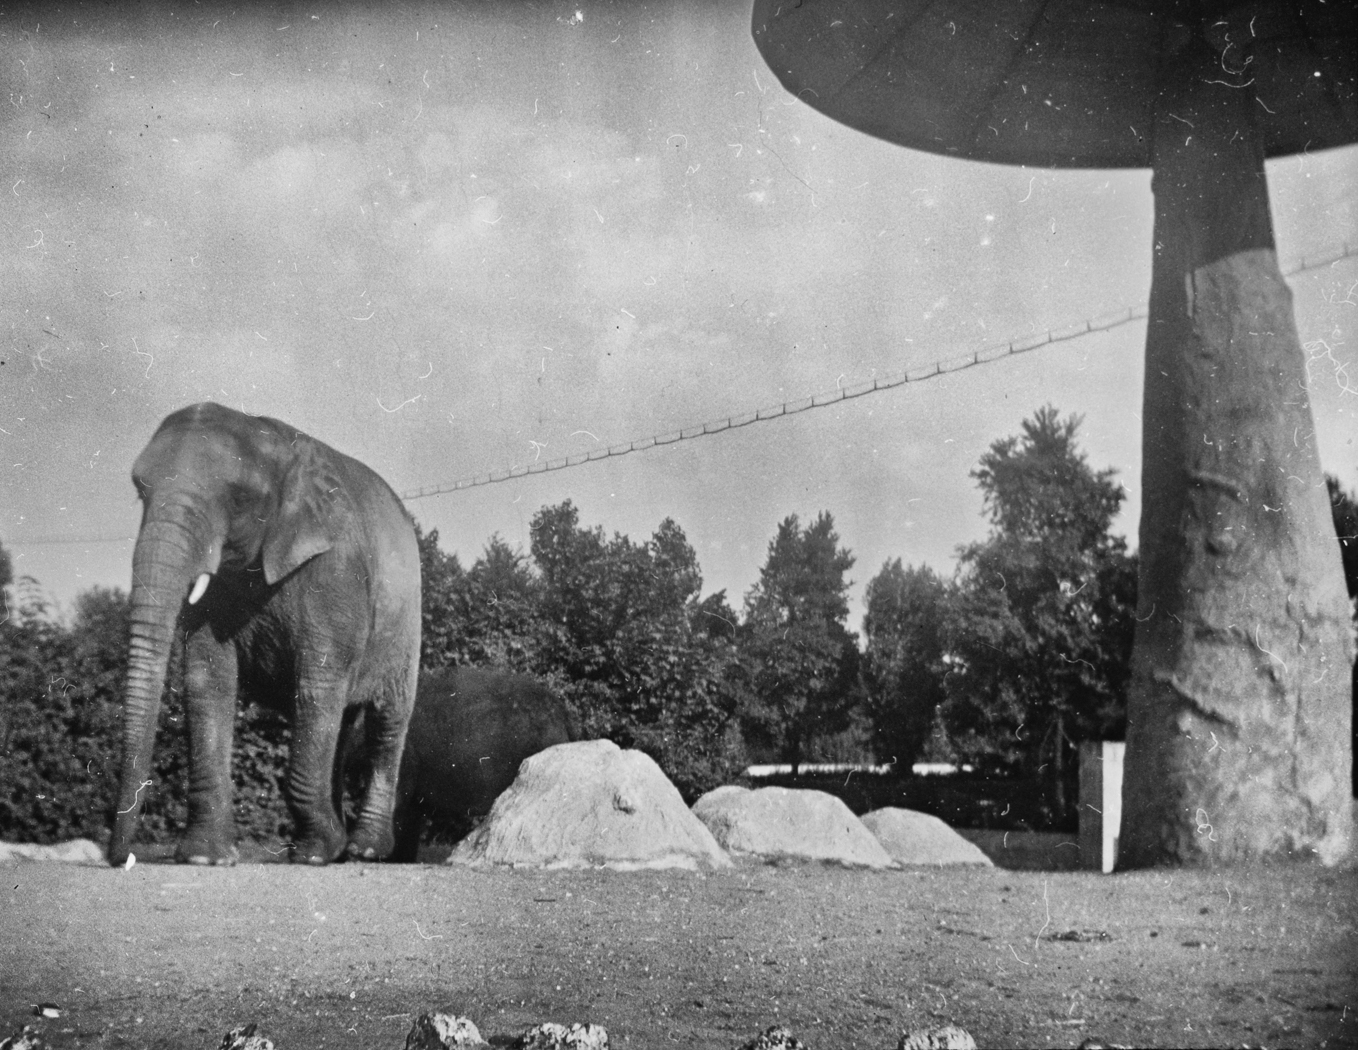 133_114 Elephant- Zoological Gardens